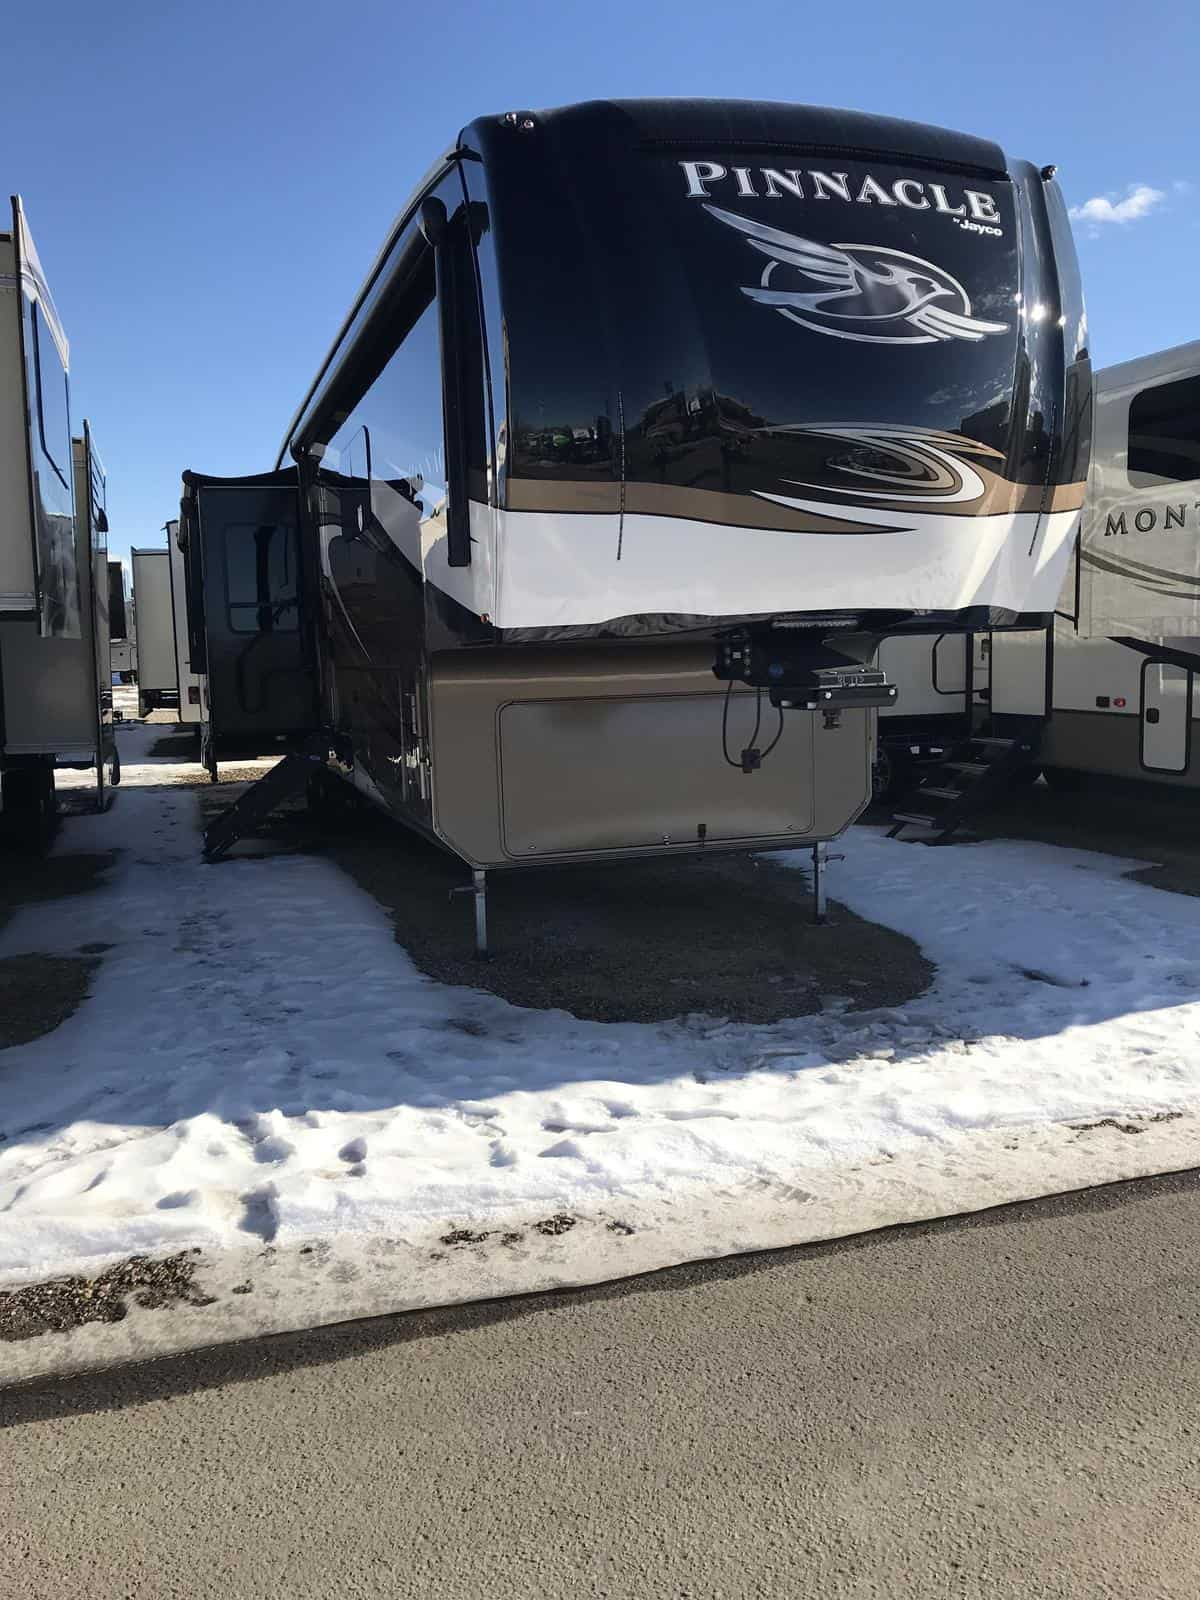 2019 JAYCO 36FBTS PINNACLE